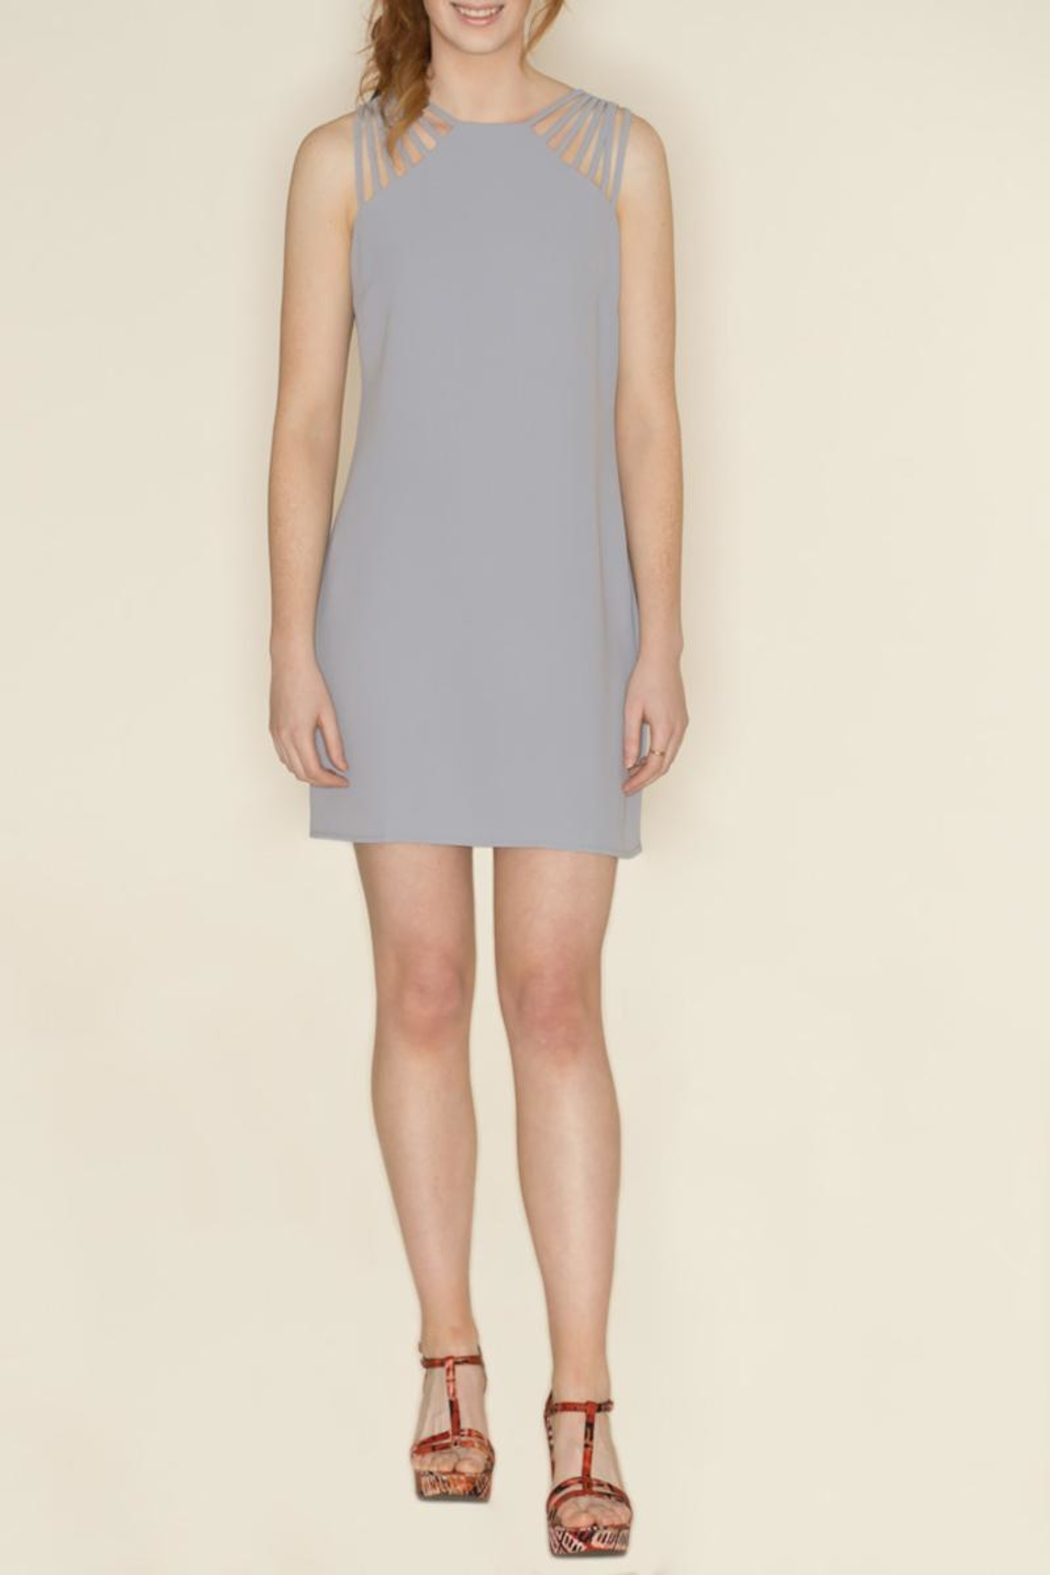 She + Sky Spaghetti Strap Dress - Main Image